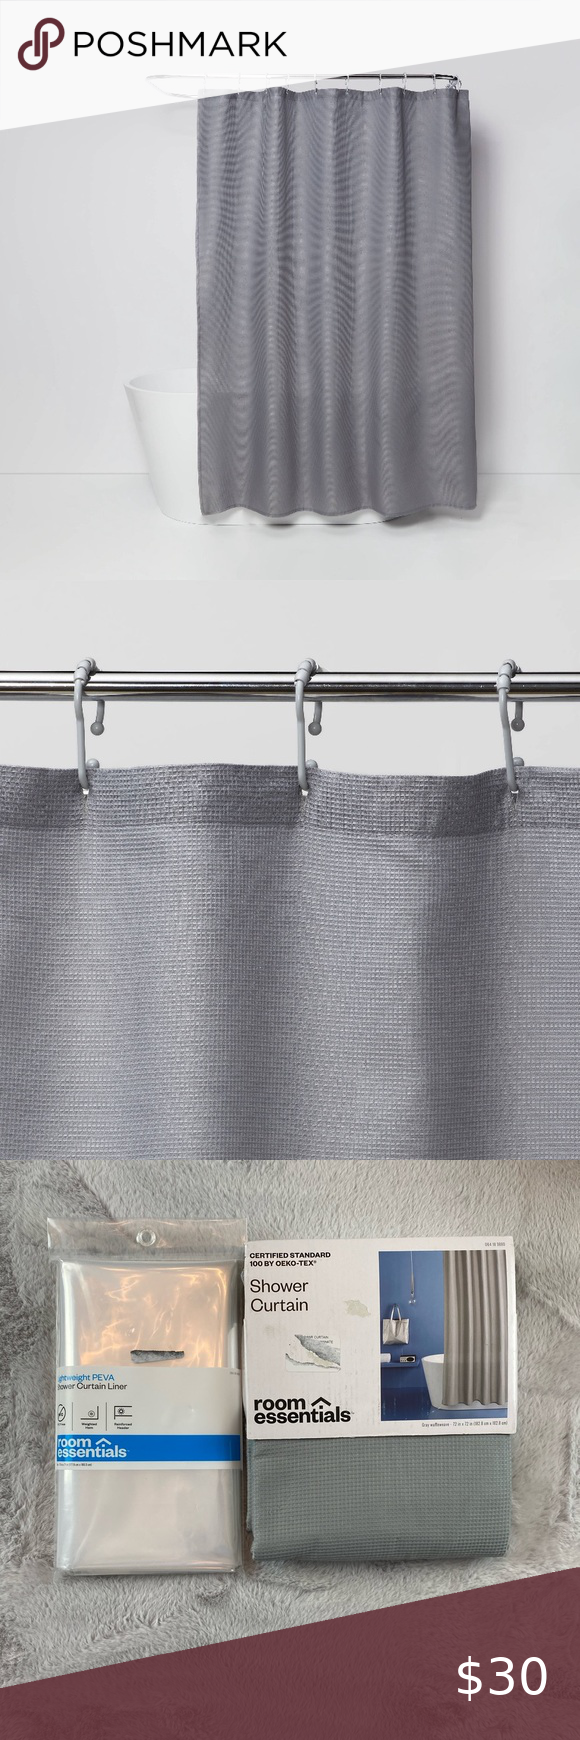 New Target Gray Shower Curtain Liner Gray Shower Curtains Fabric Shower Curtains Room Essentials